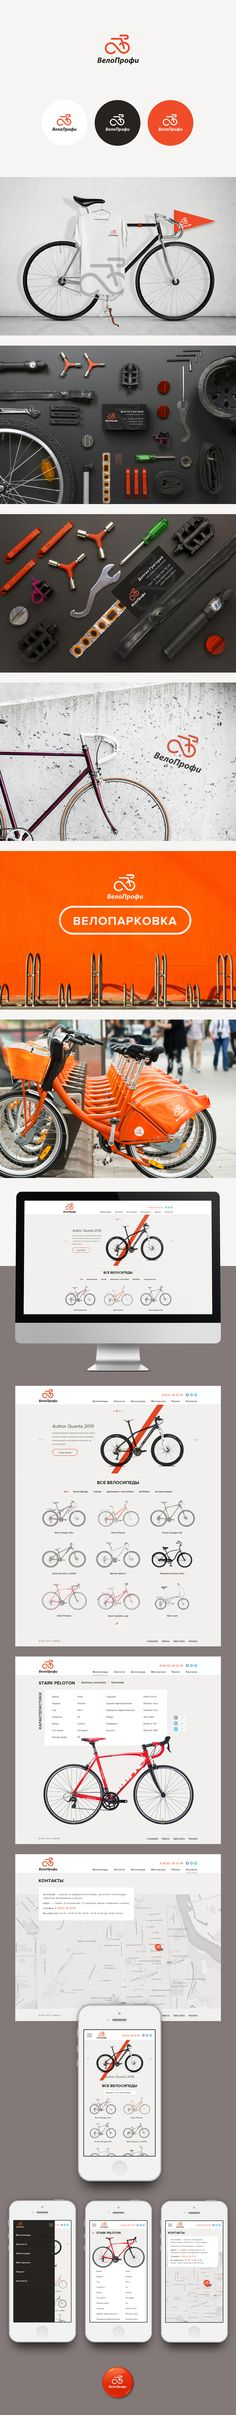 Development logo and web-design for shop on sale of bicycles and accessories. Web Design, Design Logo, Brand Identity Design, Graphic Design Branding, Corporate Design, Logo Branding, Packaging Design, Bike Design, Corporate Identity